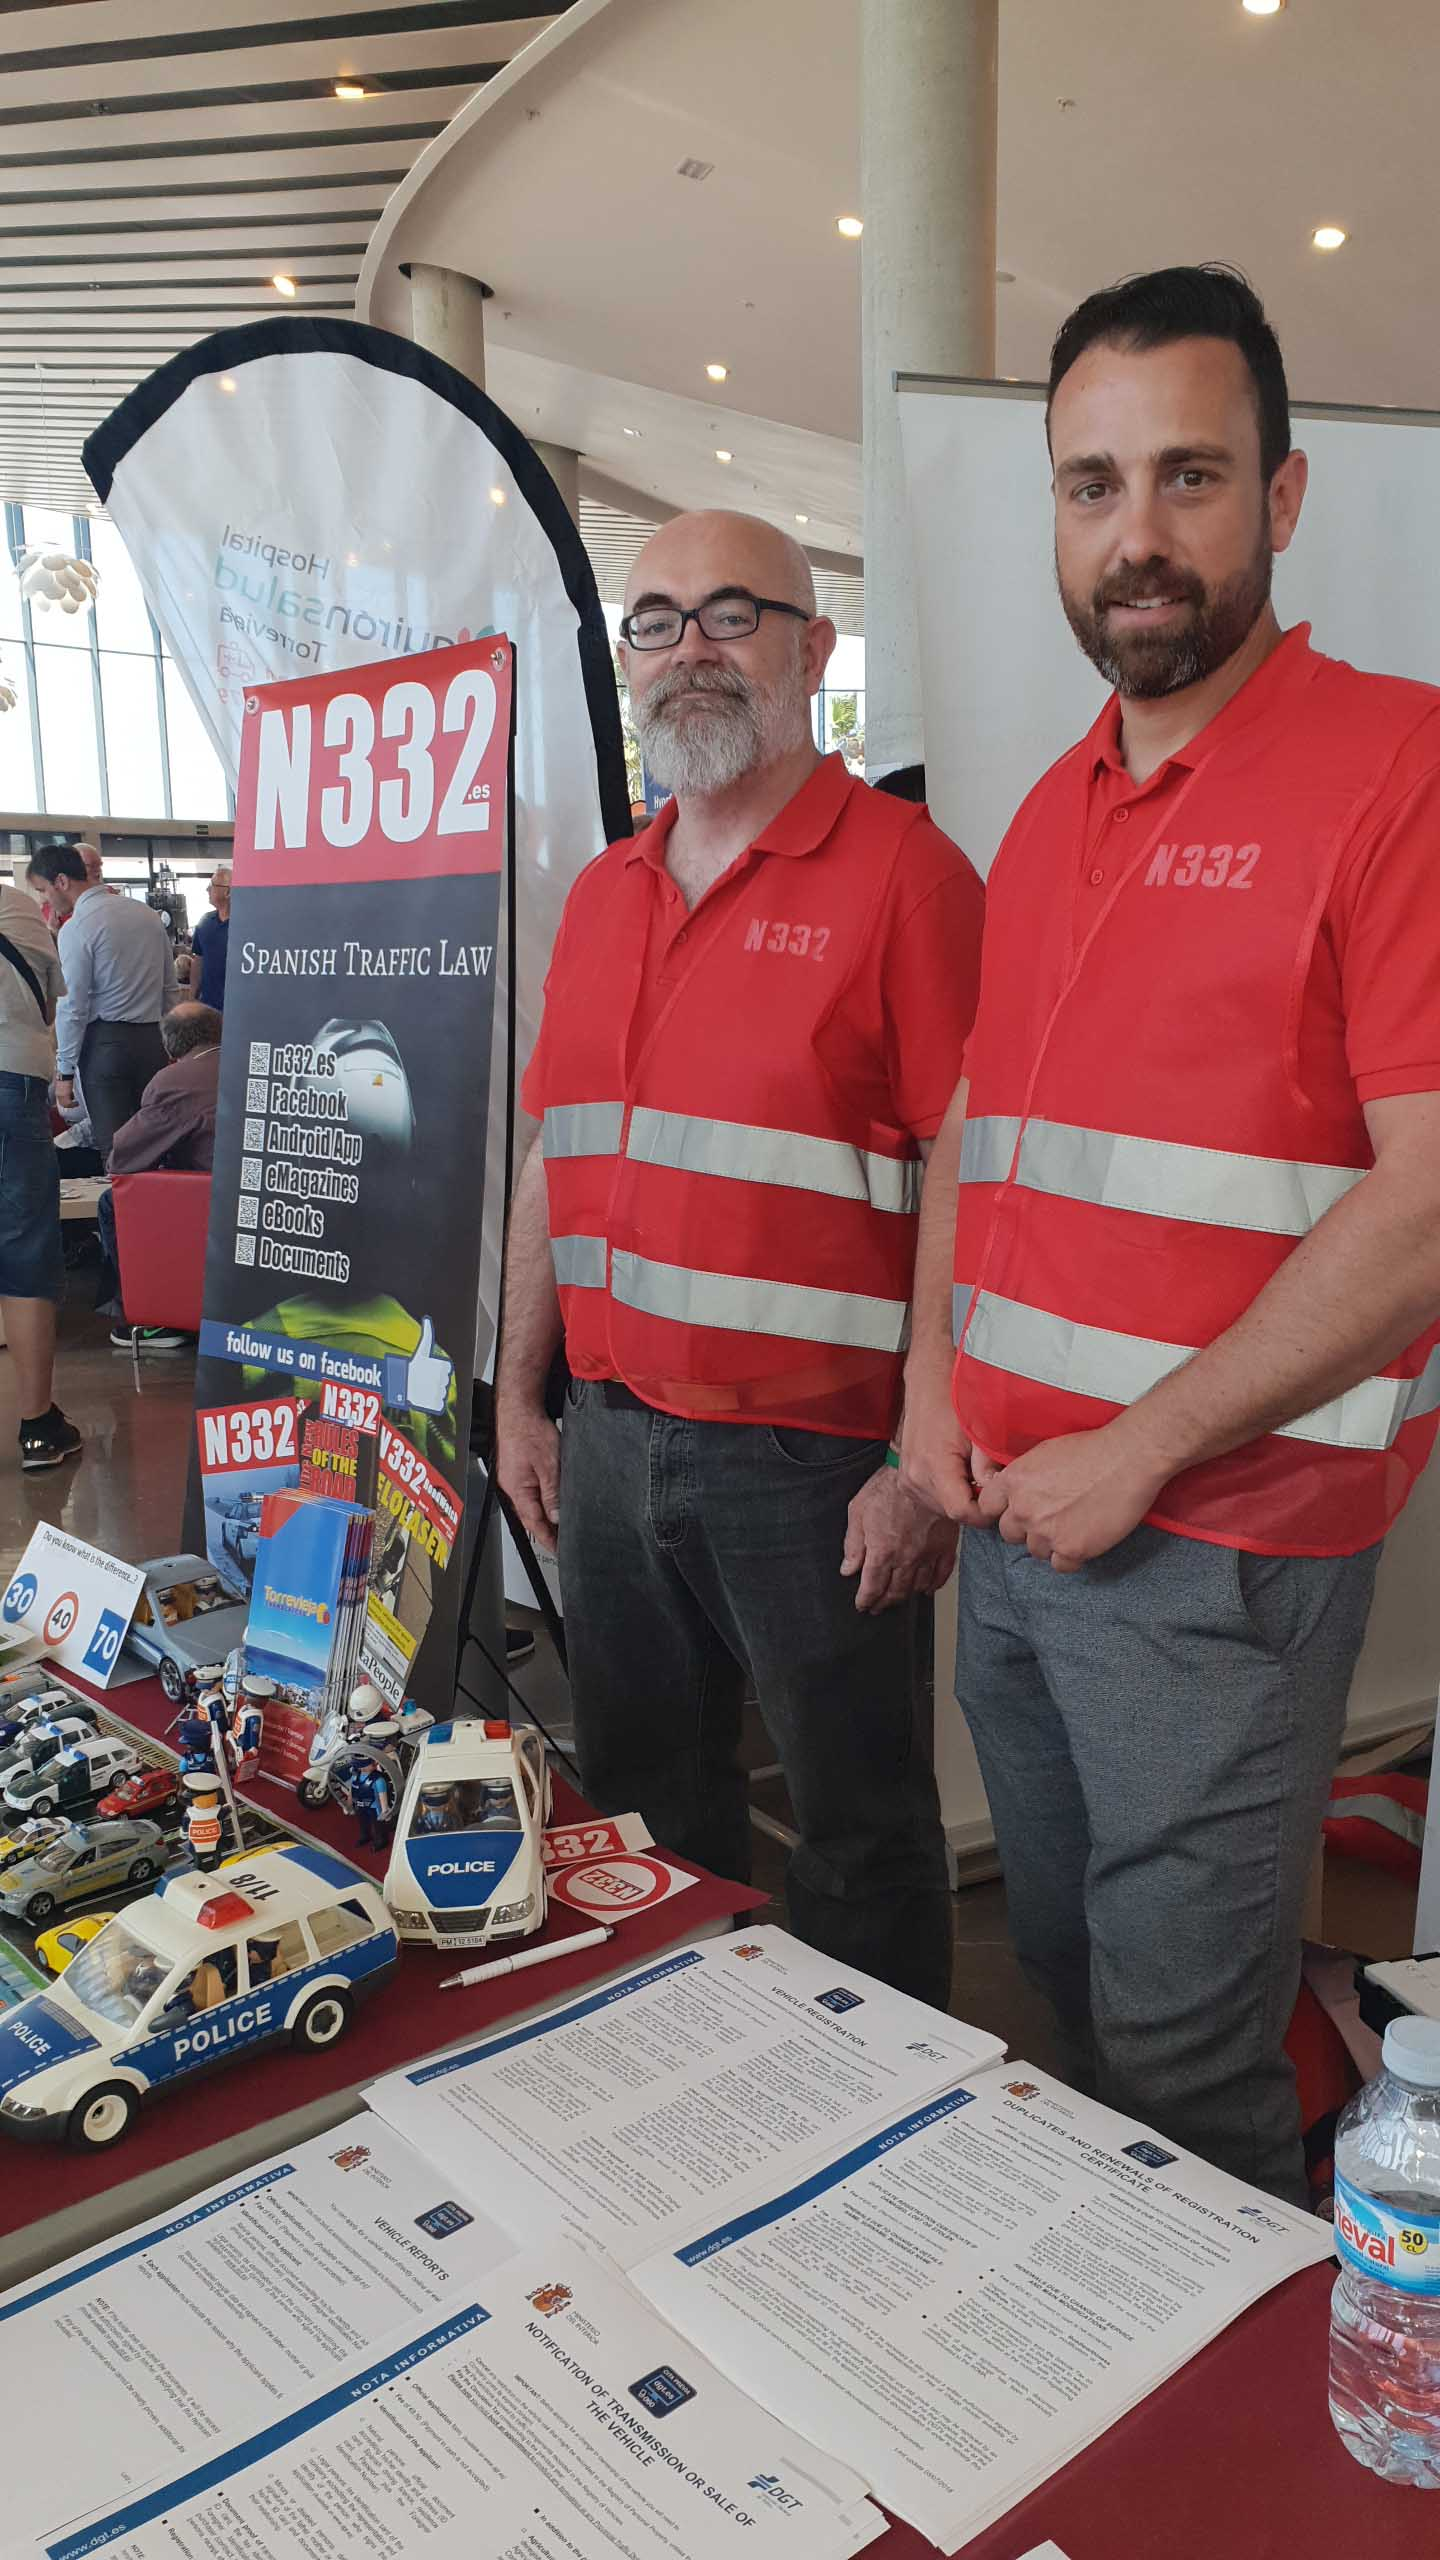 The N332 stand had a steady stream ov visitors all day long